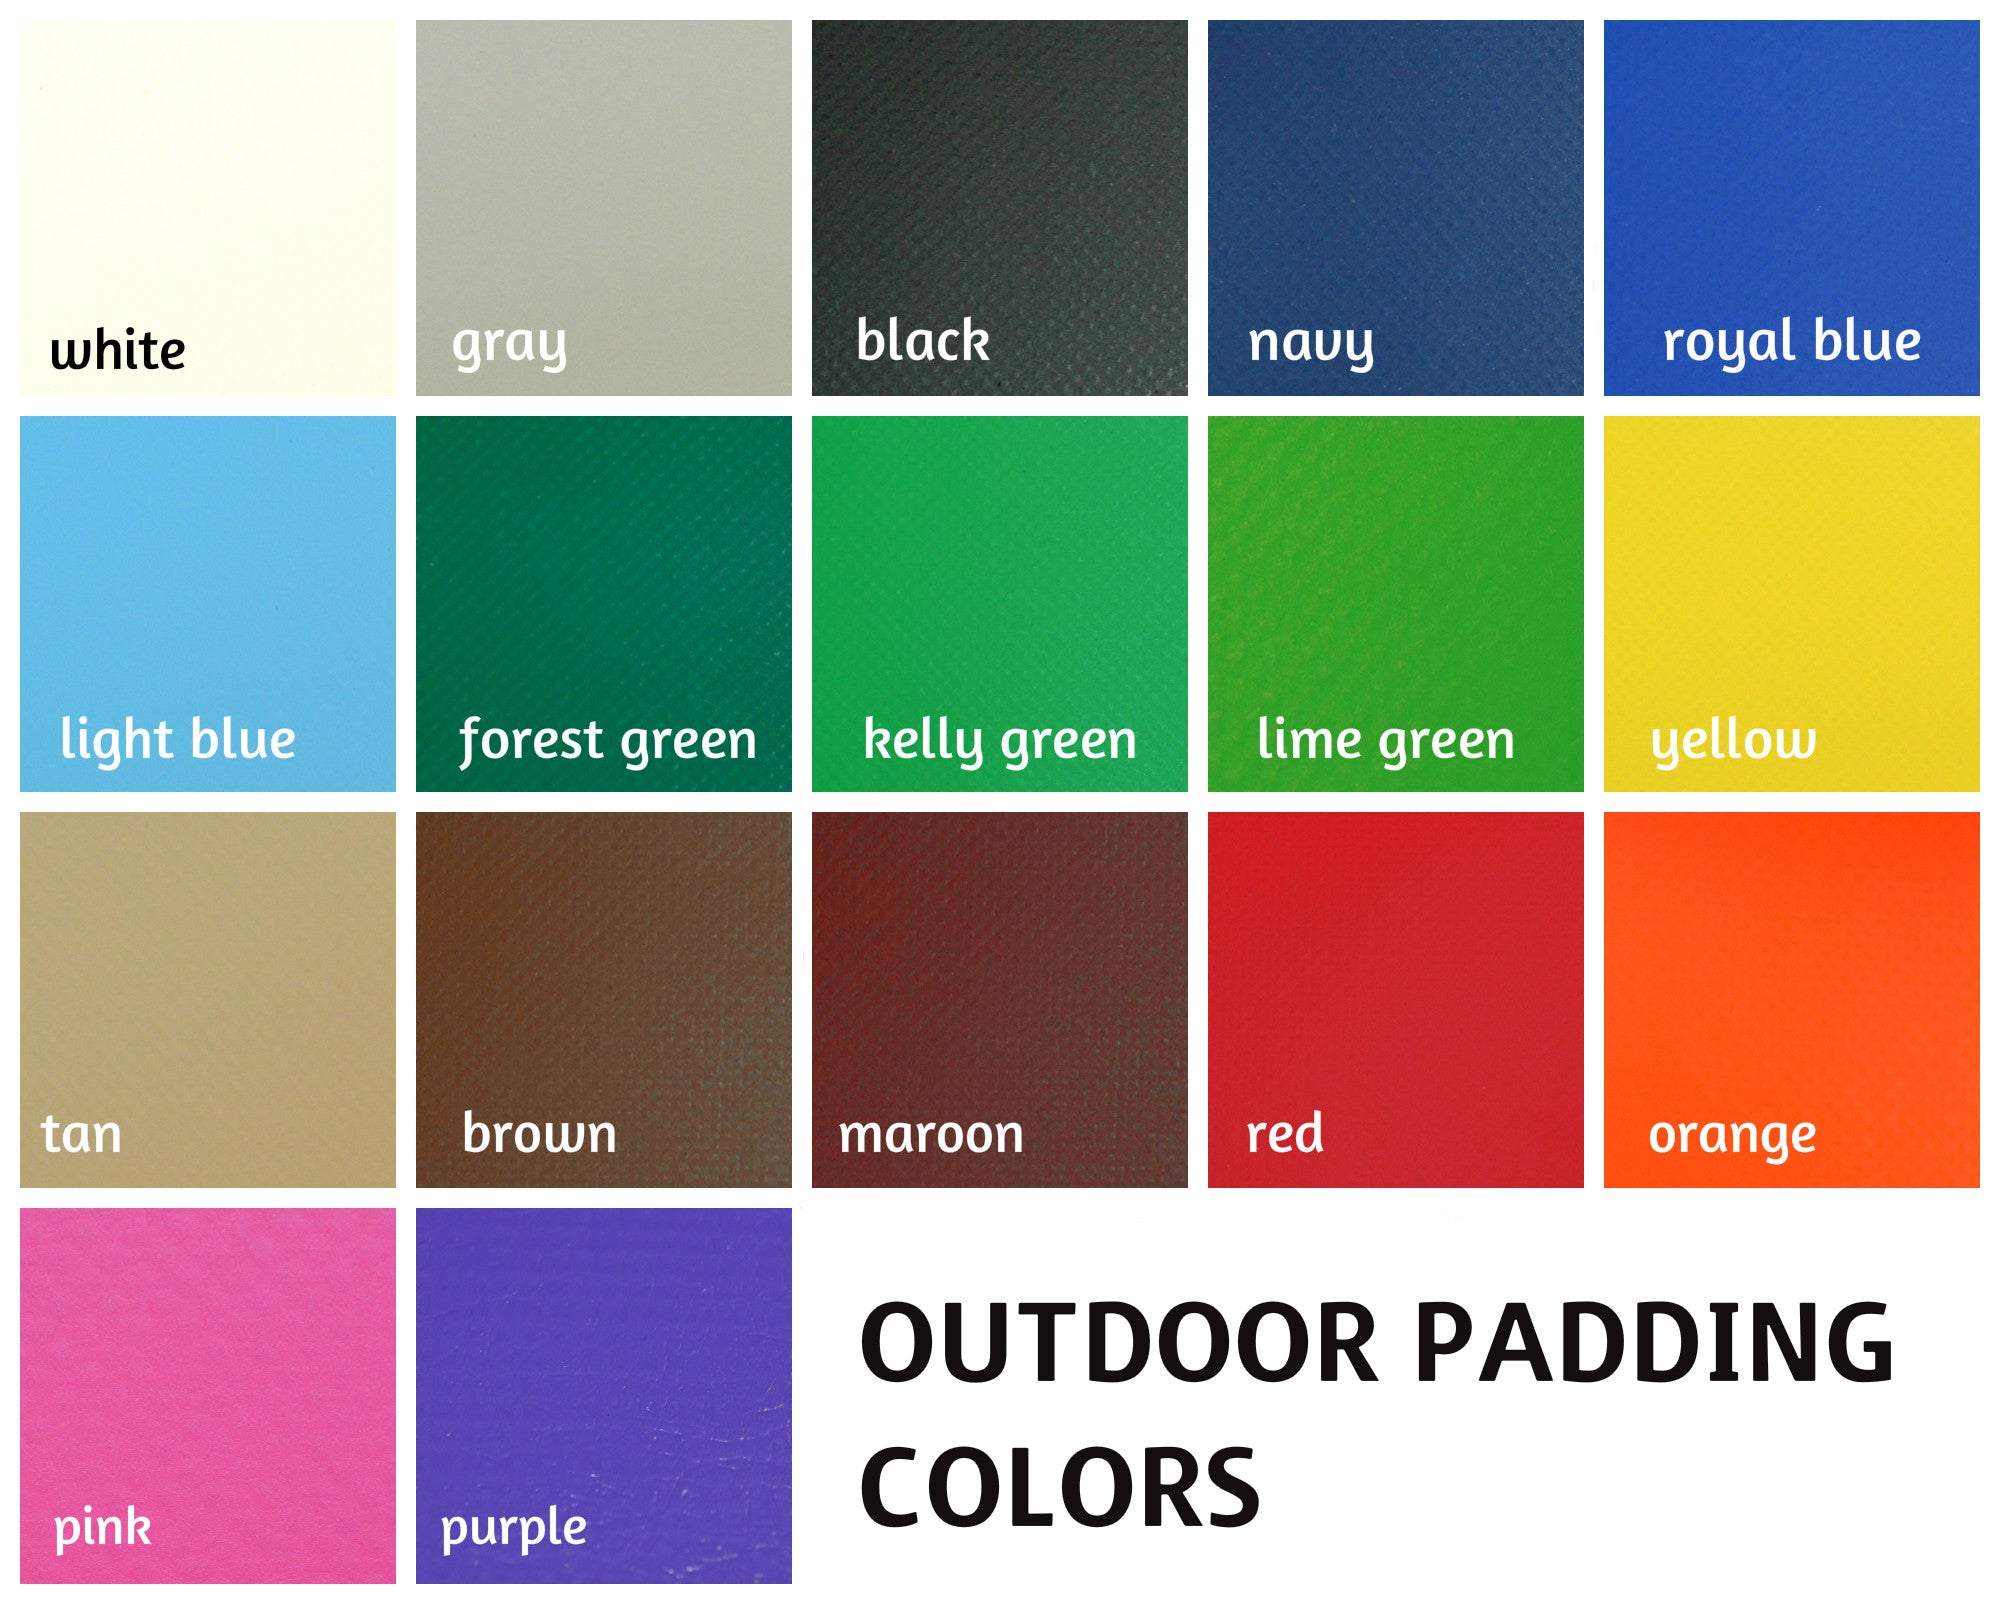 Outdoor padding color chart